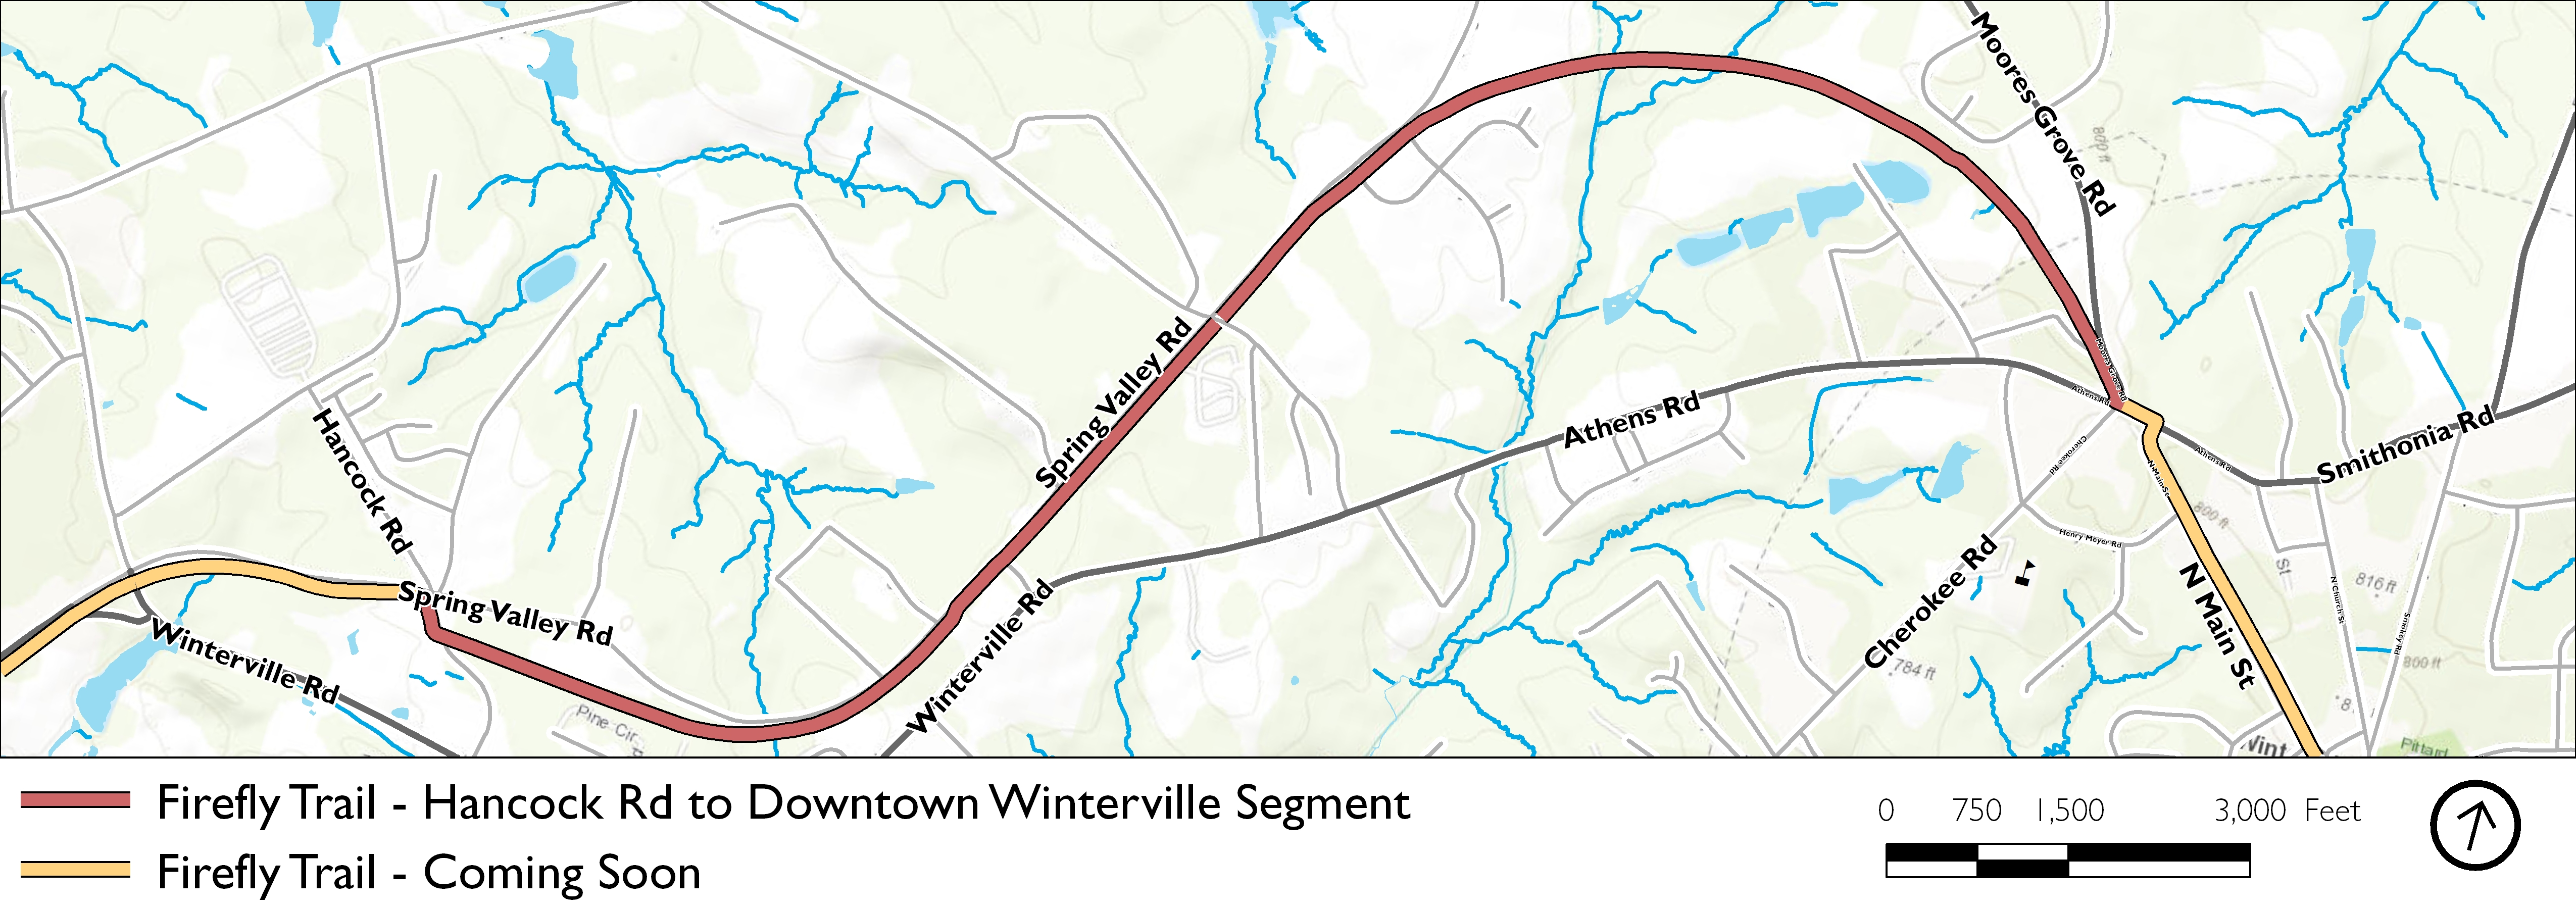 Firefly Trail - Hancock Rd to Downtown Winterville Segment